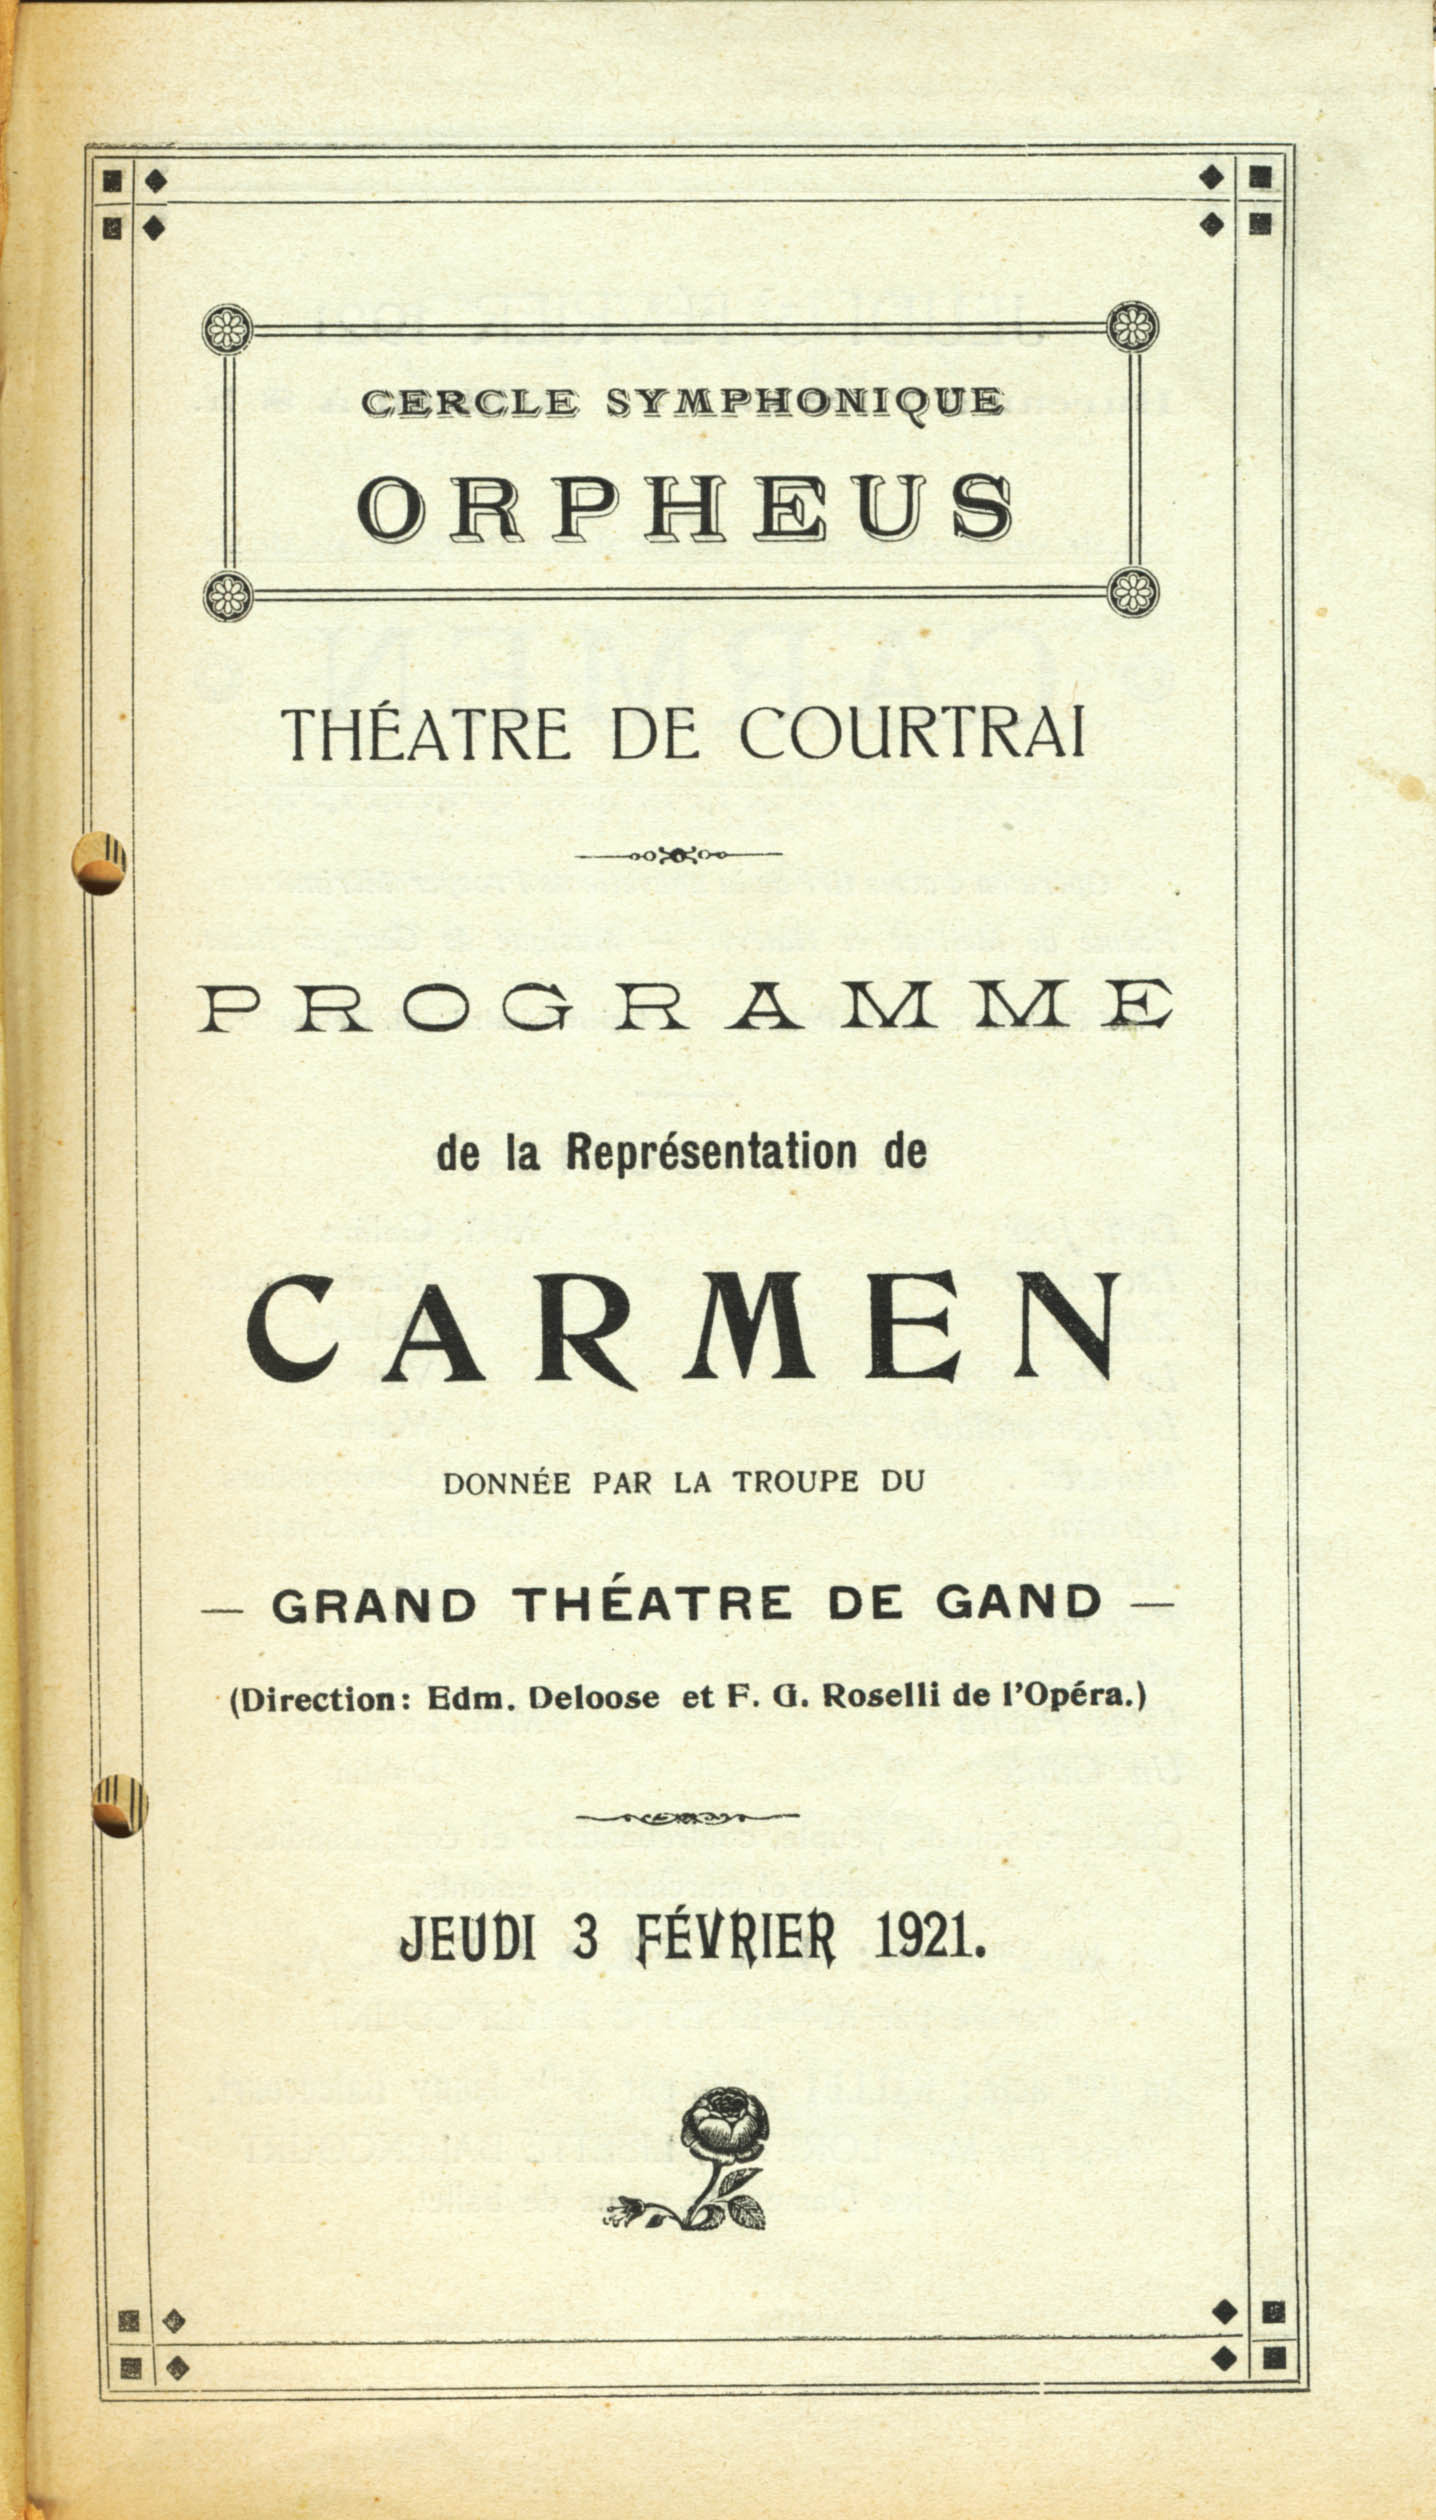 Programme - 1, Stadsschouwburg / Théâtre communal, Courtray, 1921